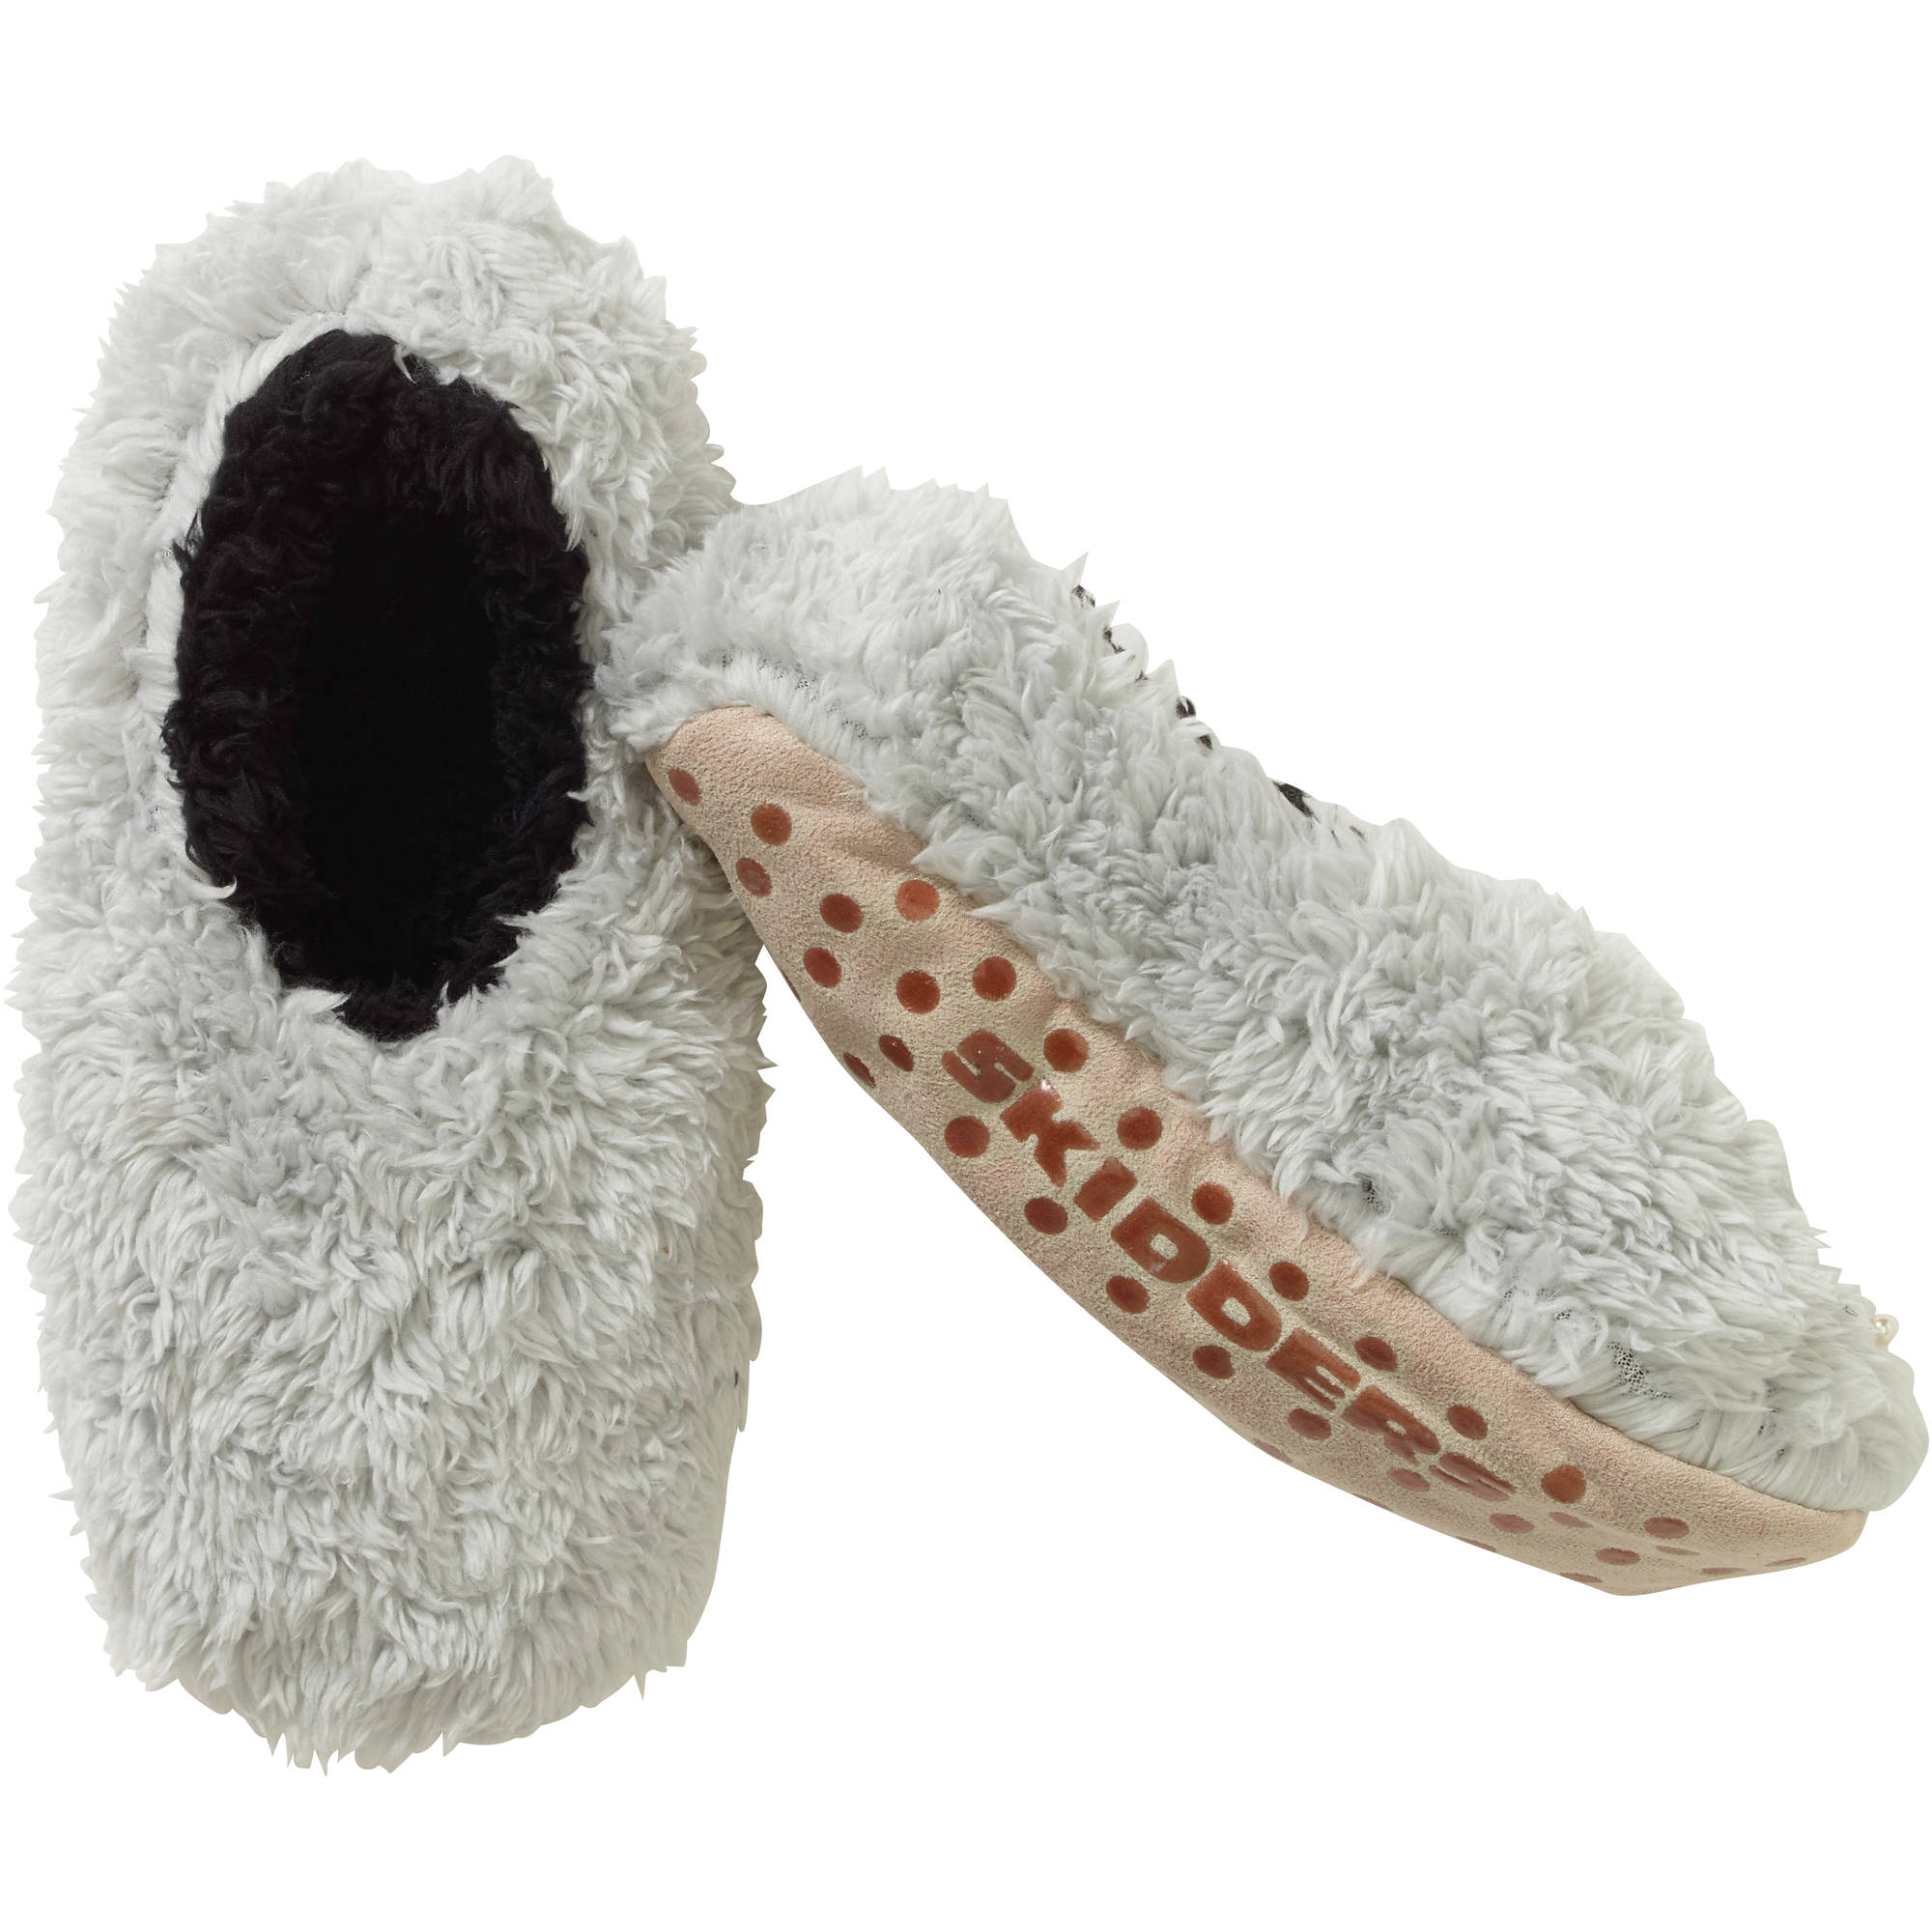 Skidder Womens' Super Plush Slipper With